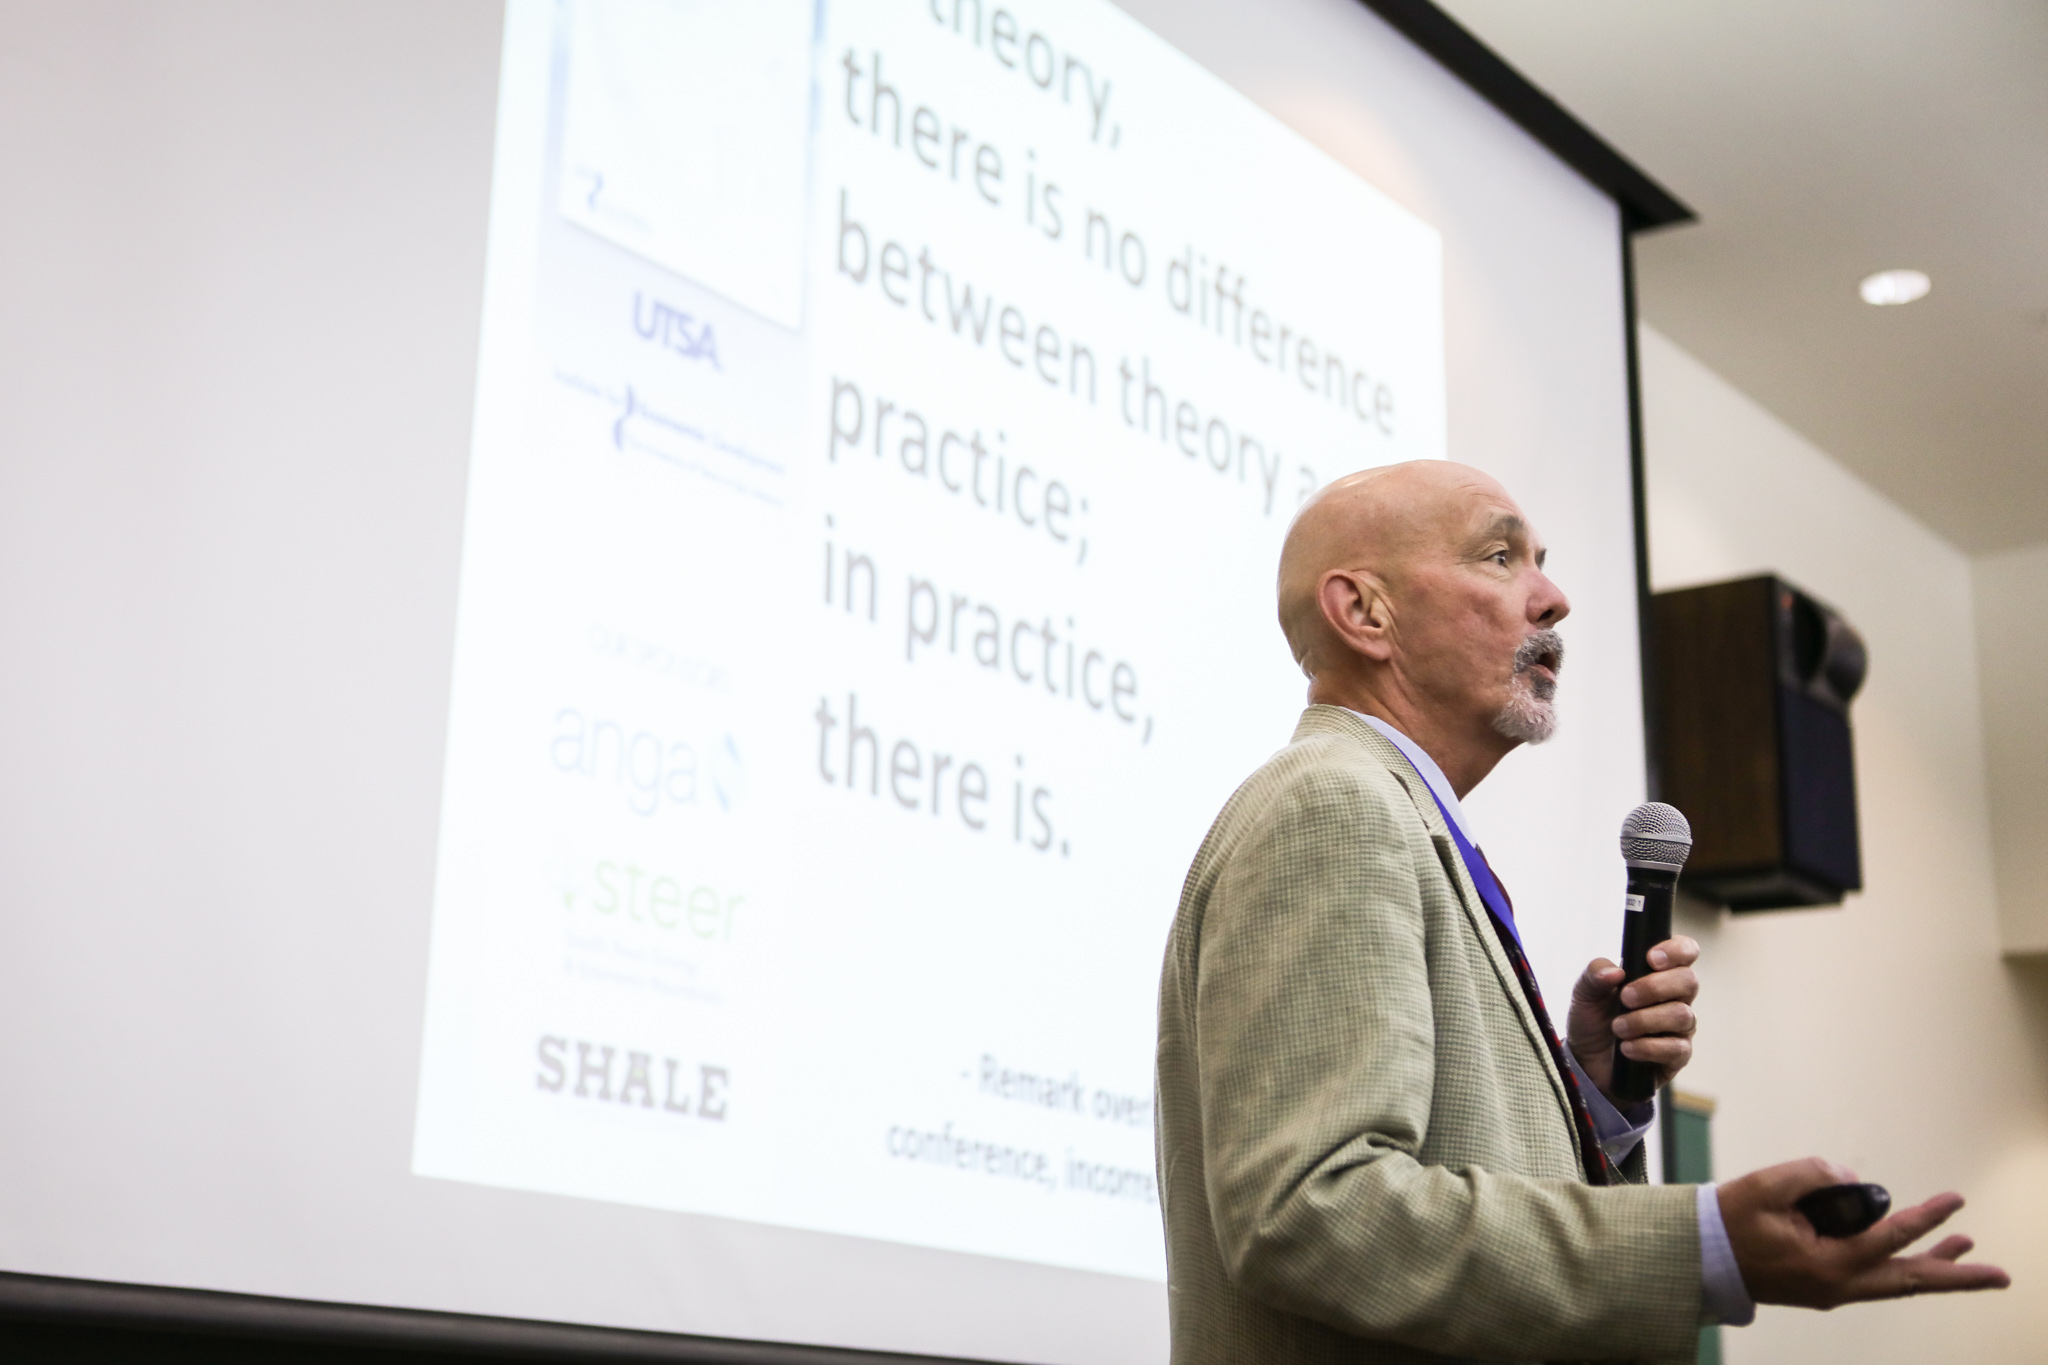 UTSA Institute for Economic Development Senior Research Director Thomas Tunstall speaks at the 6th Annual Eagle Ford Shale Consortium Conference.